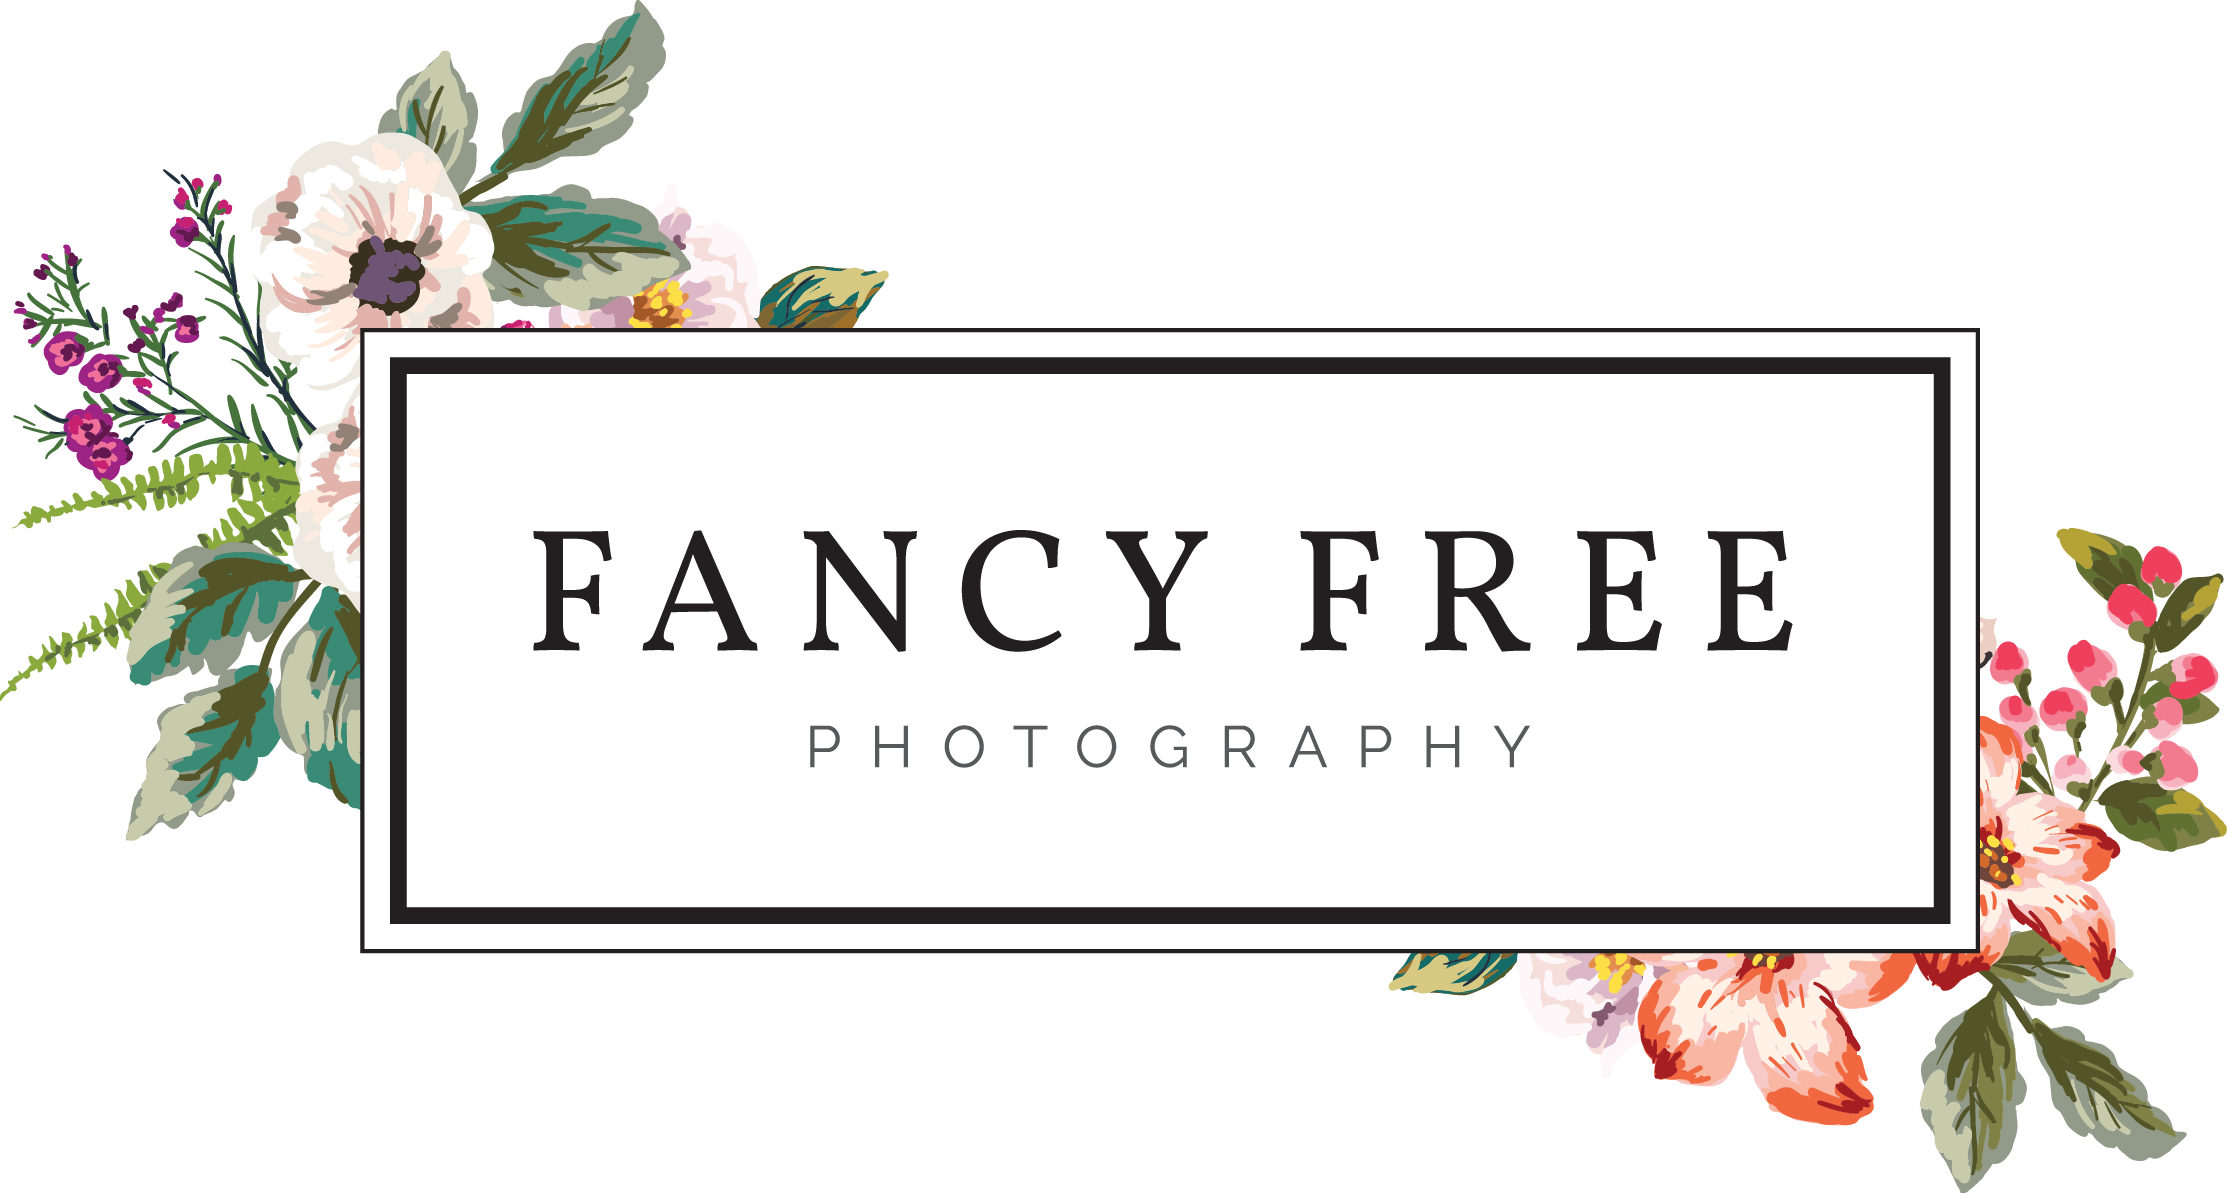 Fancy Free Photography